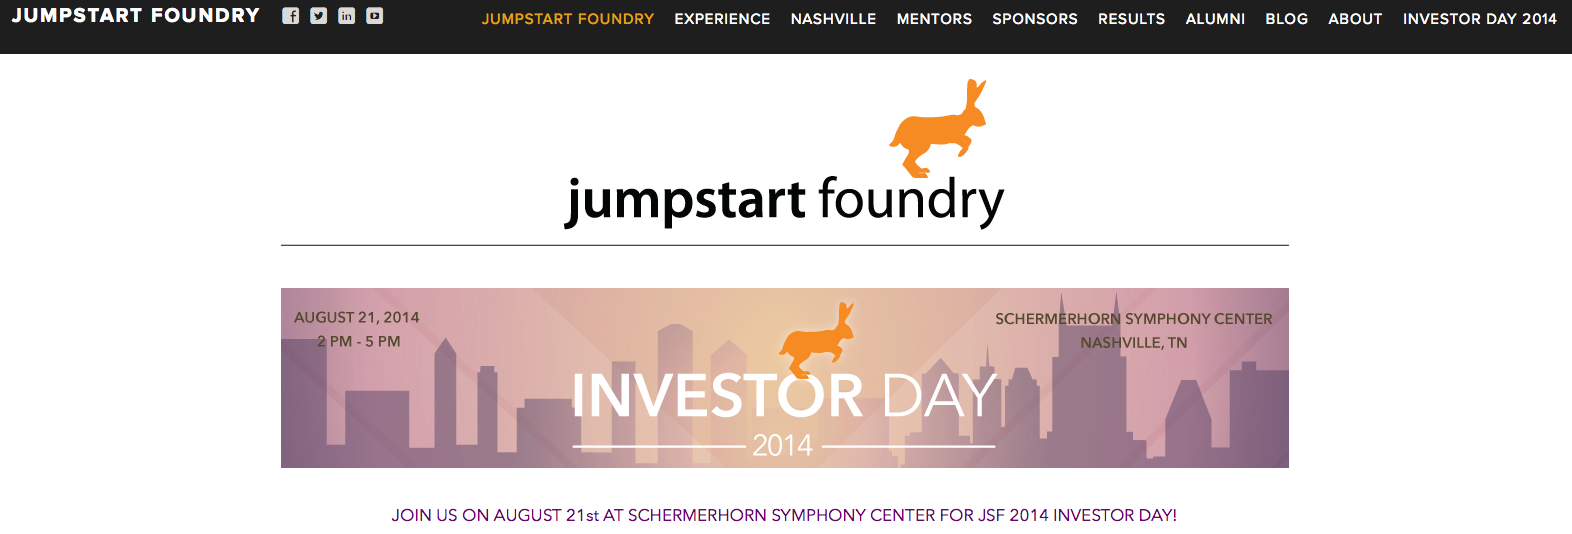 Jumpstart_Foundry